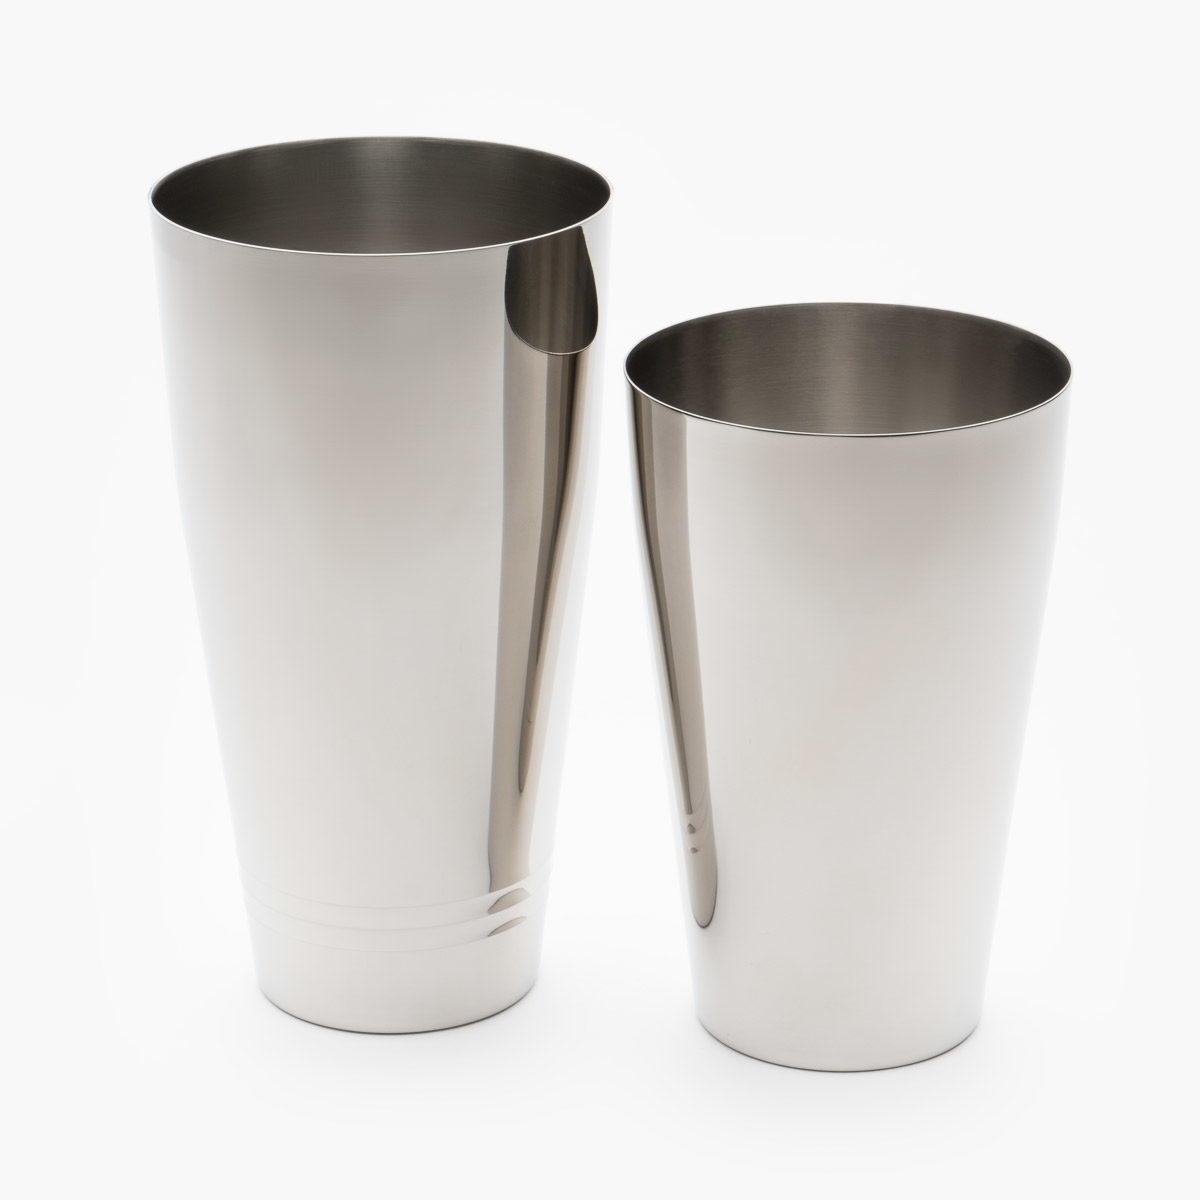 Yukiwa Boston shaker tins in silver